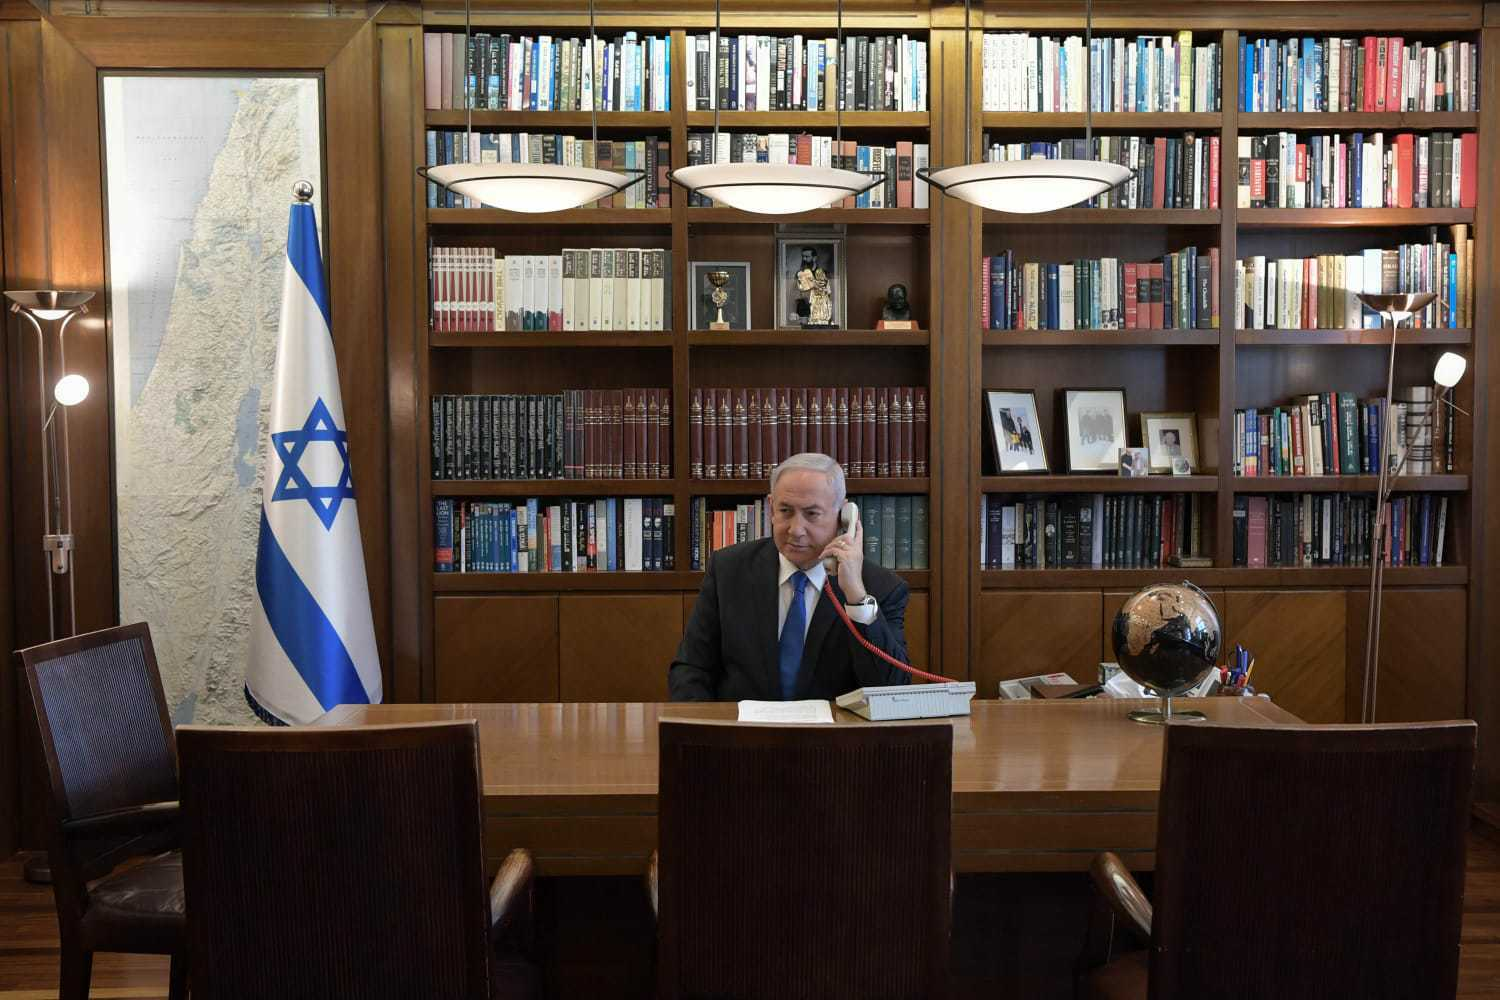 Prime Minister Benjamin Netanyahu at his office in Jerusalem on a phone call with UAE leader Mohammed Bin Zayed on August 13, 2020. (Kobi Gideon/PMO)